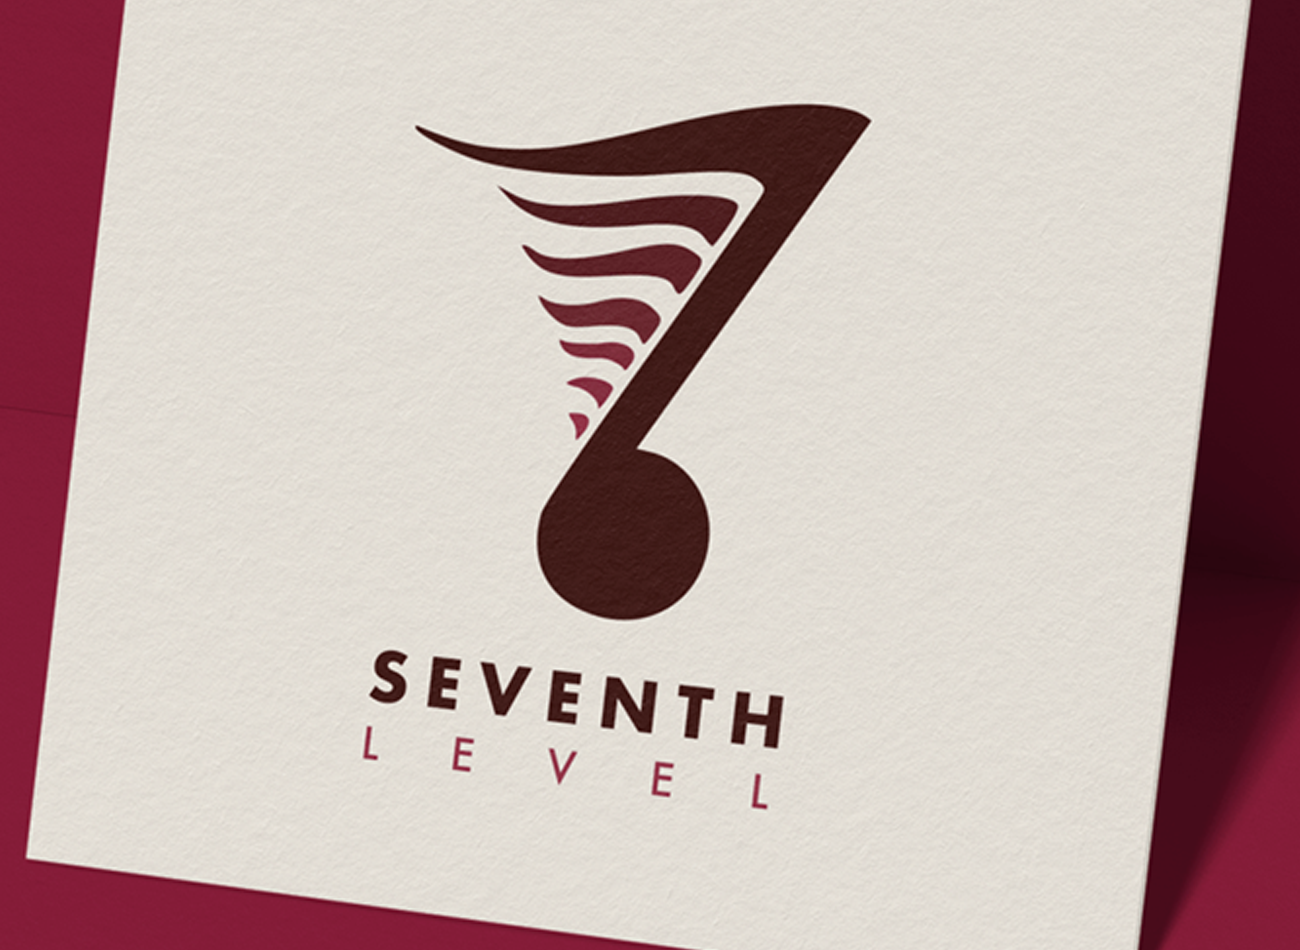 seventh-level-iconic-logo-designers-agent-orange-johannesburg-creative-agency.png